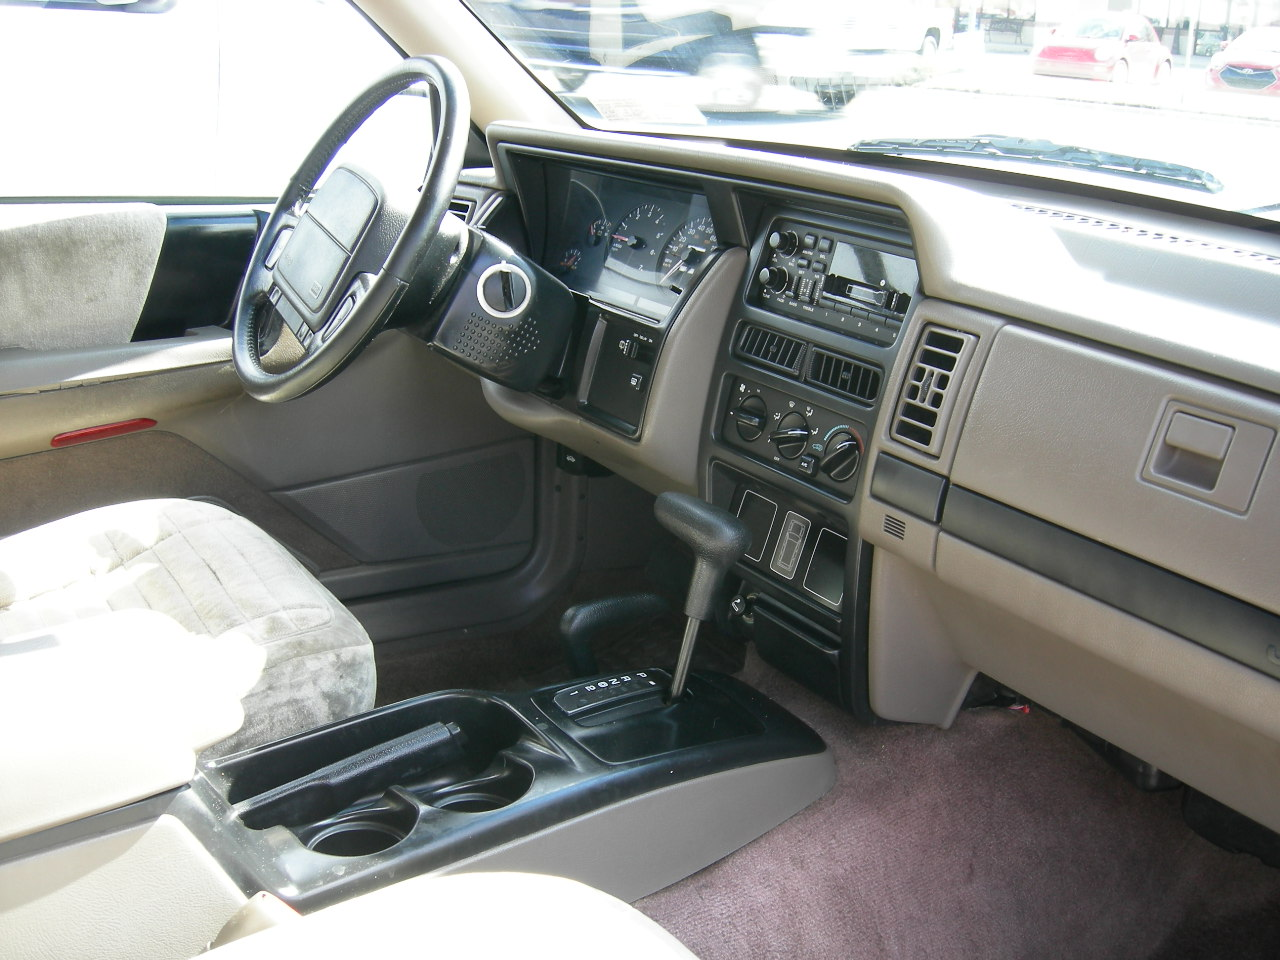 1993 jeep grand cherokee pictures cargurus 1993 jeep grand cherokee interior